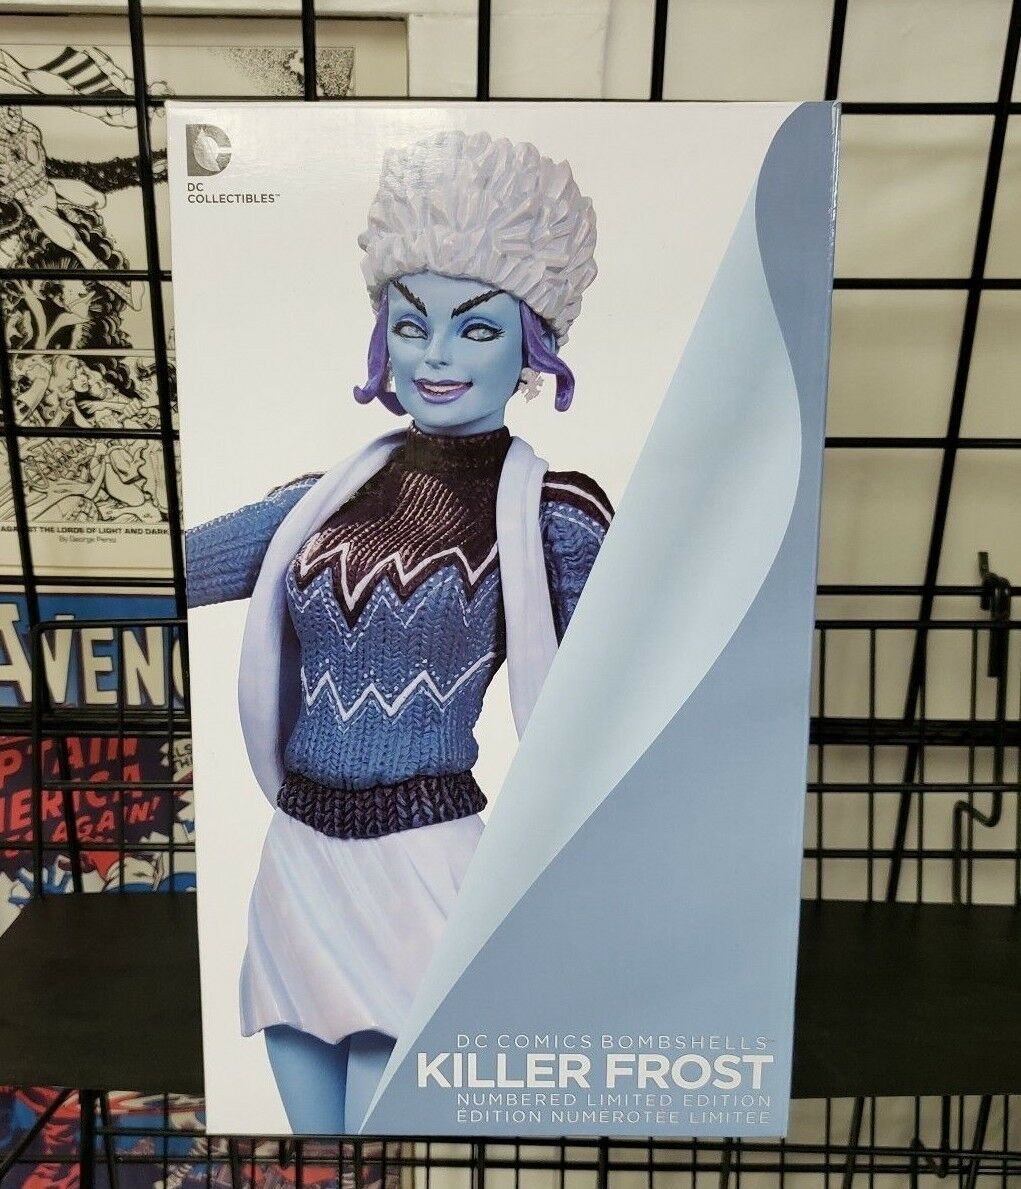 DC Collectibles Bombshells Series Killer Frost Statue Limited Edition Sold Out